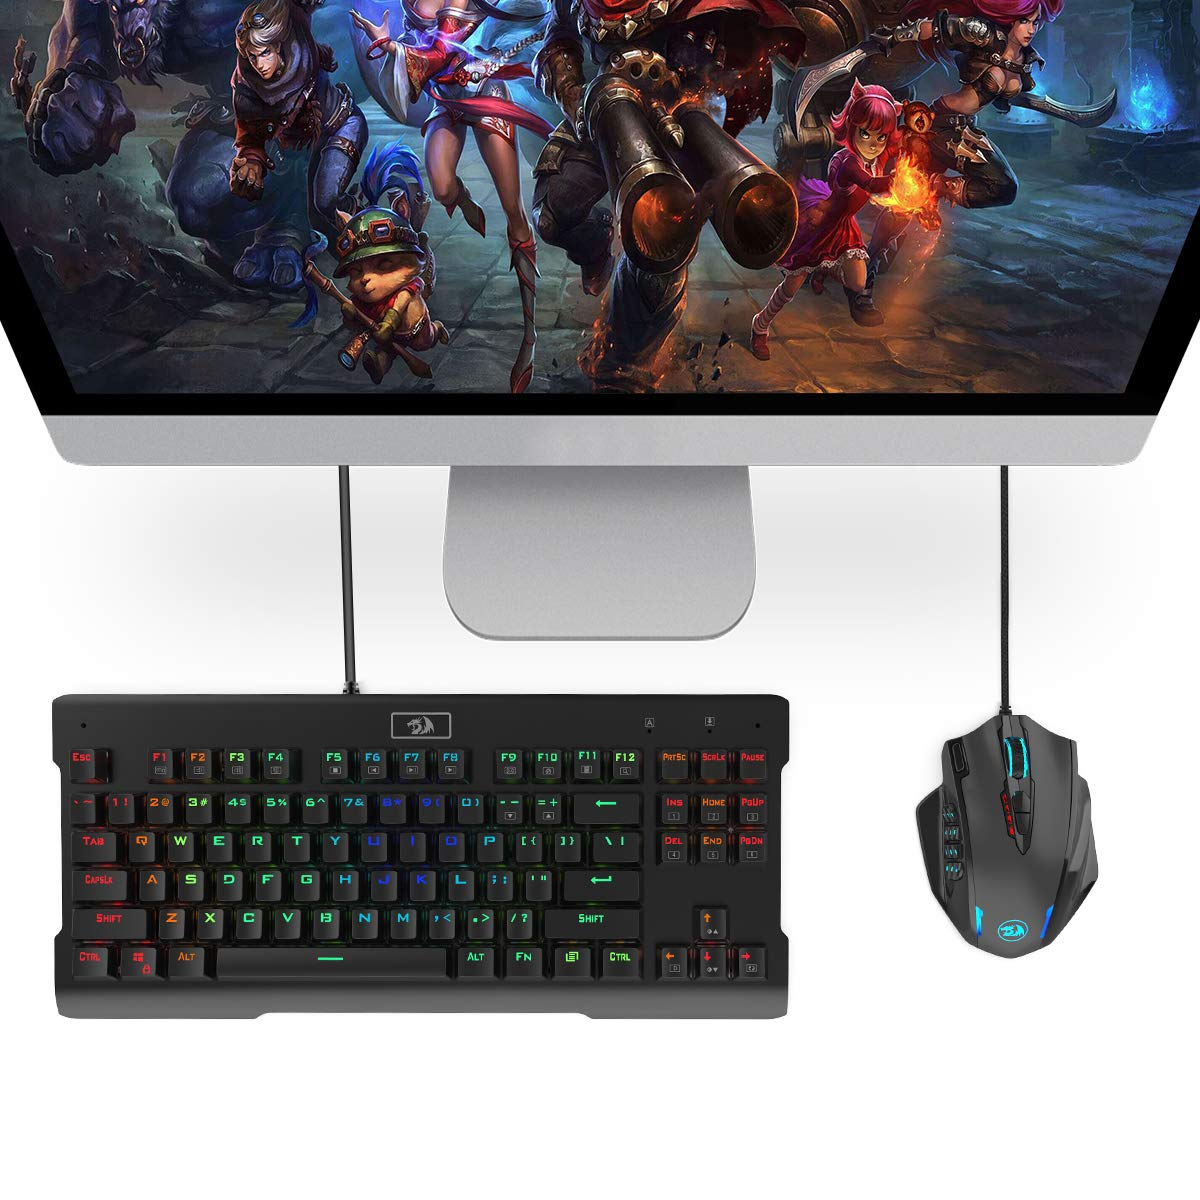 Redragon Impact RGB LED MMO Mouse with Side Buttons Laser Wired Gaming Mouse with 12,400DPI, High Precision, 19 Programmable Mouse Buttons by Redragon (Image #8)